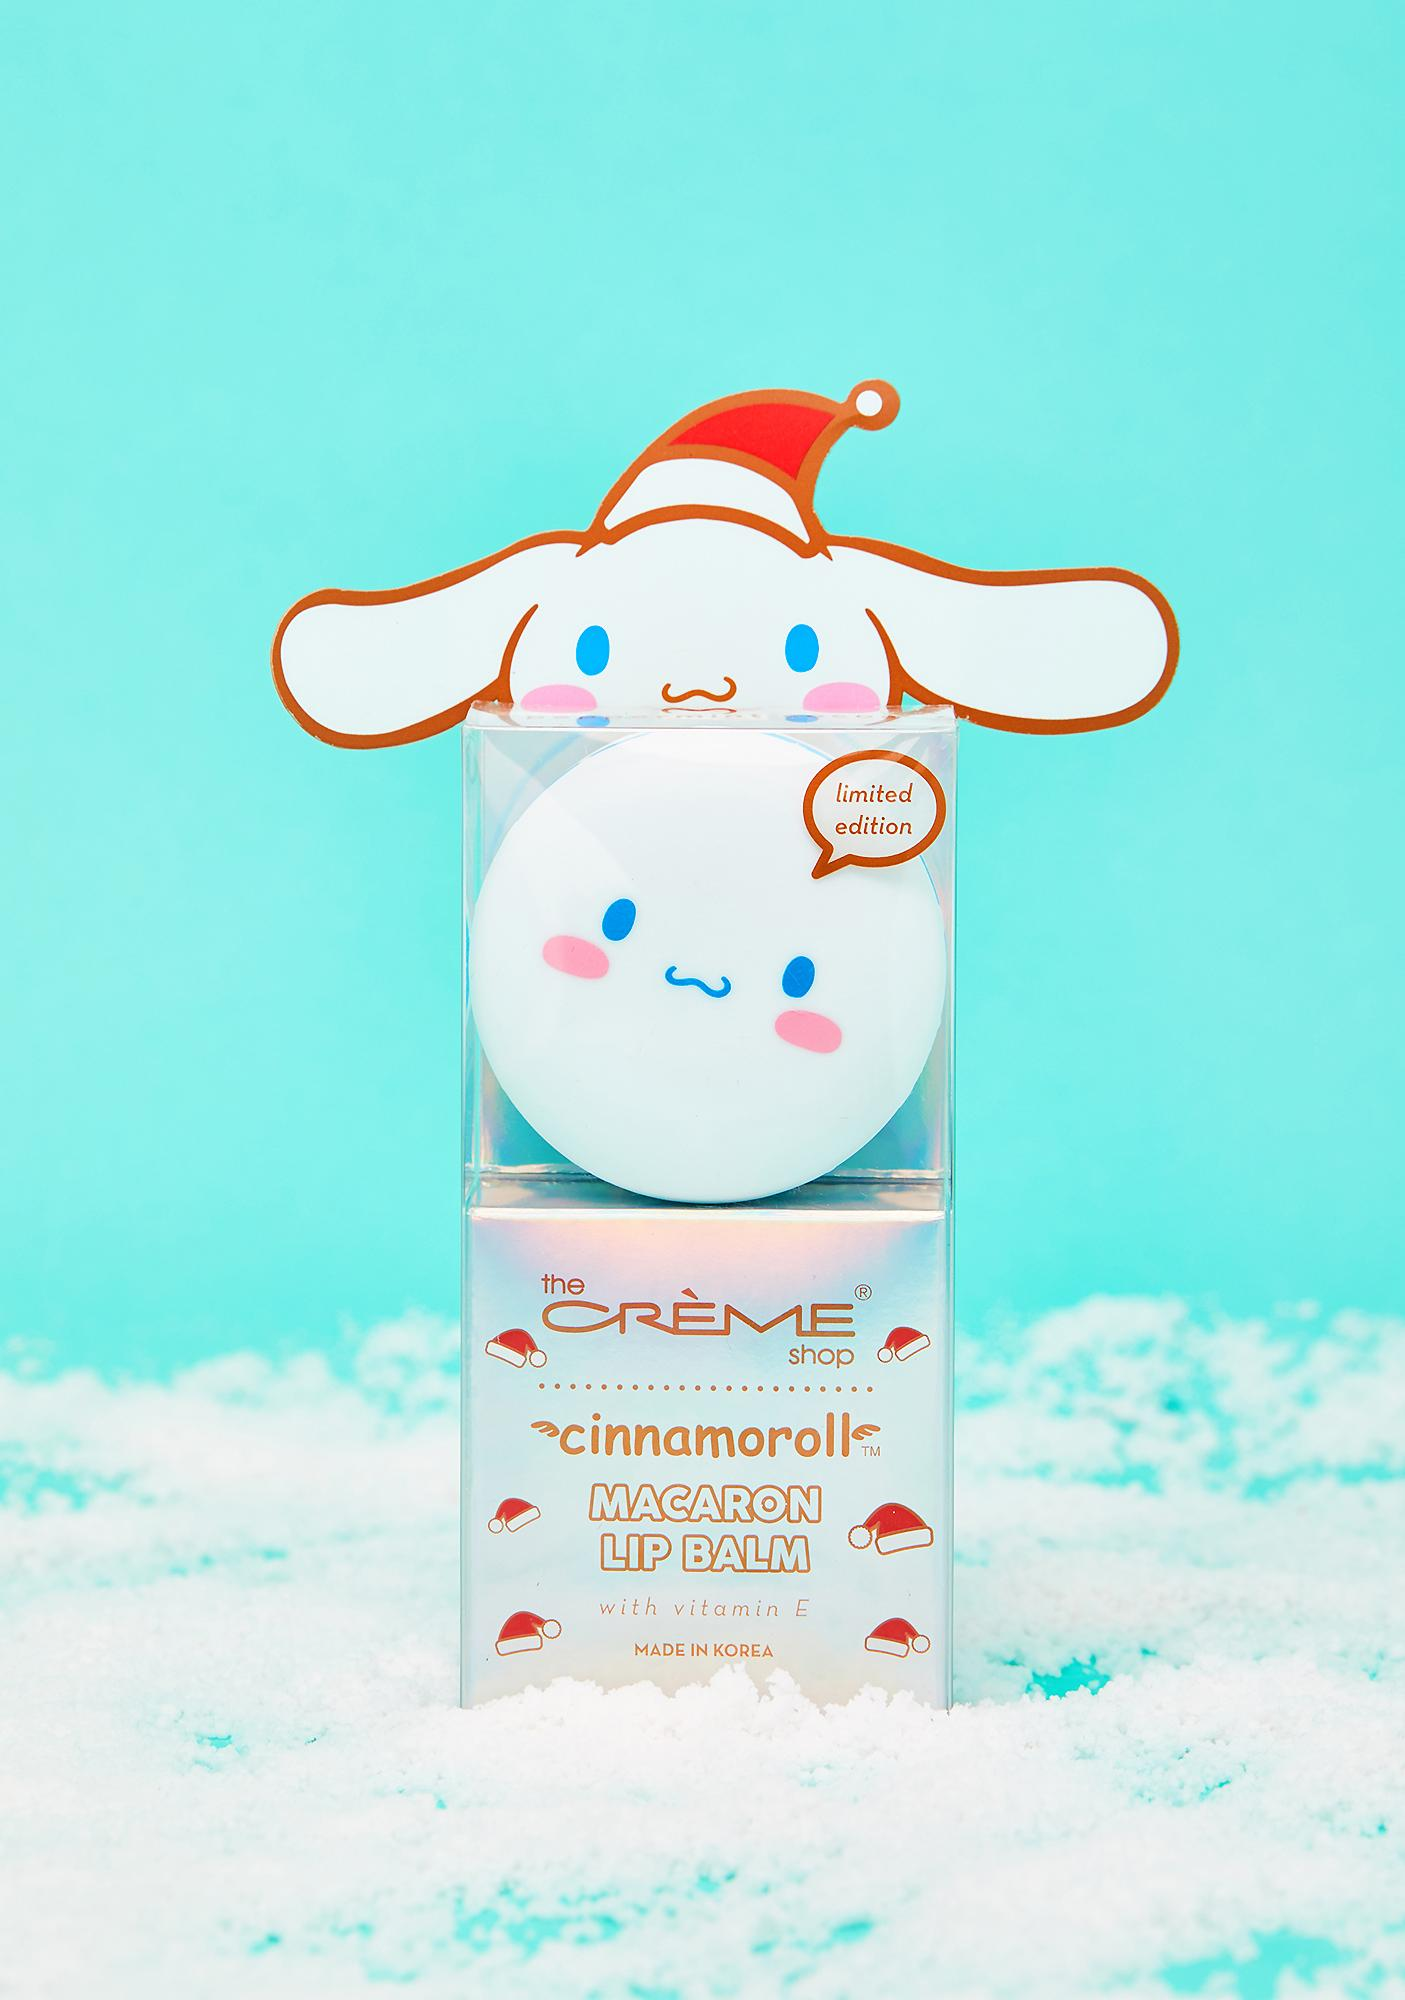 The Crème Shop Hello Kitty Cinnamoroll Macaroon Lip Balm